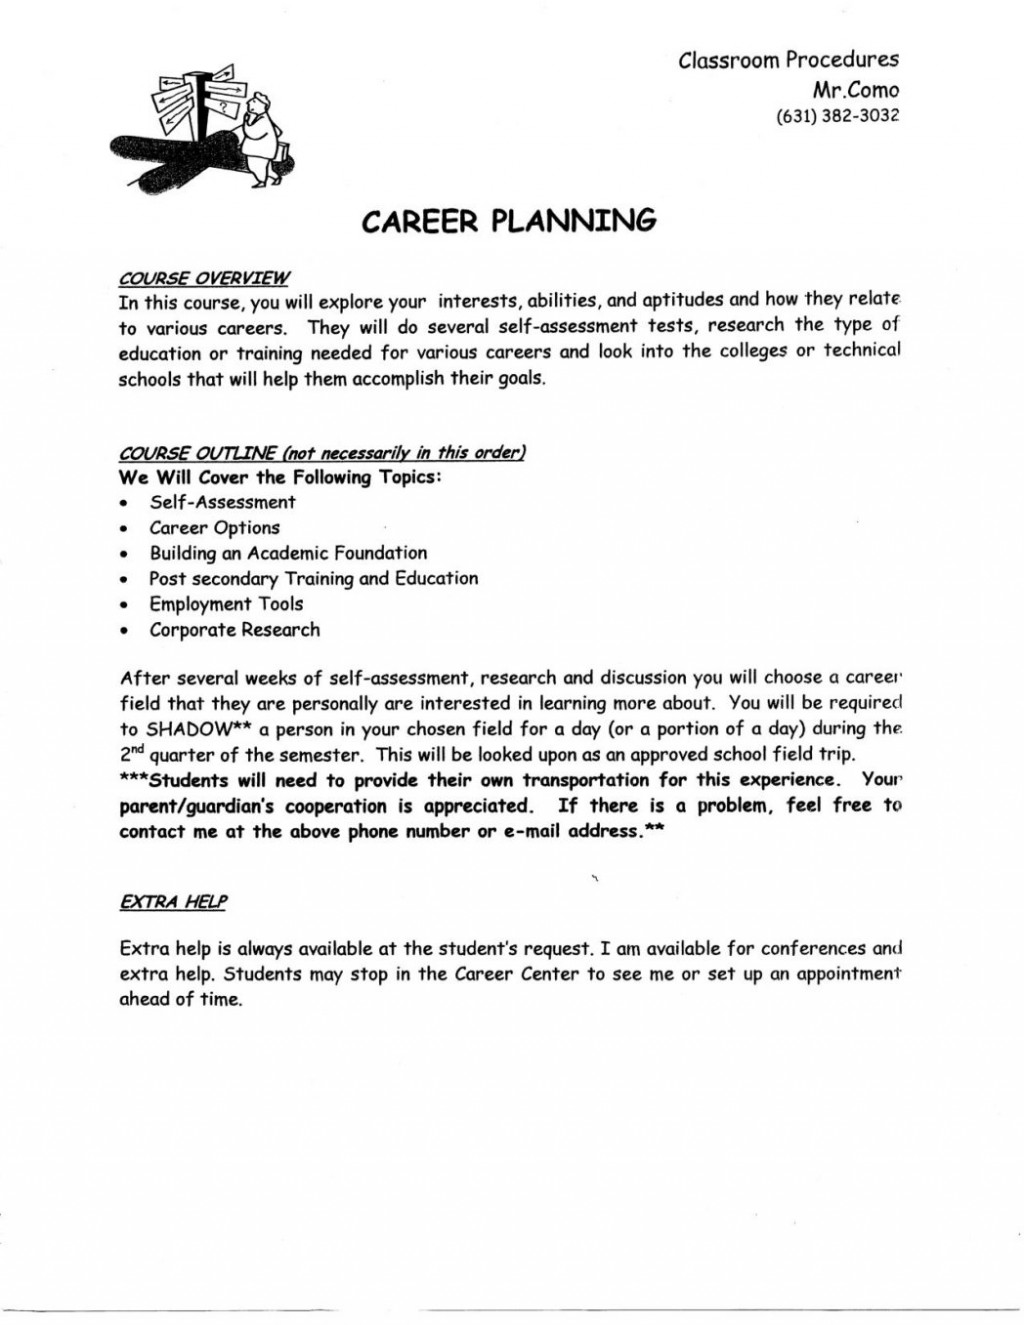 007 Type My Essay Career Plan After Graduation From Planni Types Of College Essays Students Three Questions 1048x1357 Rare Guy Where Can I On A Mac Someone Large